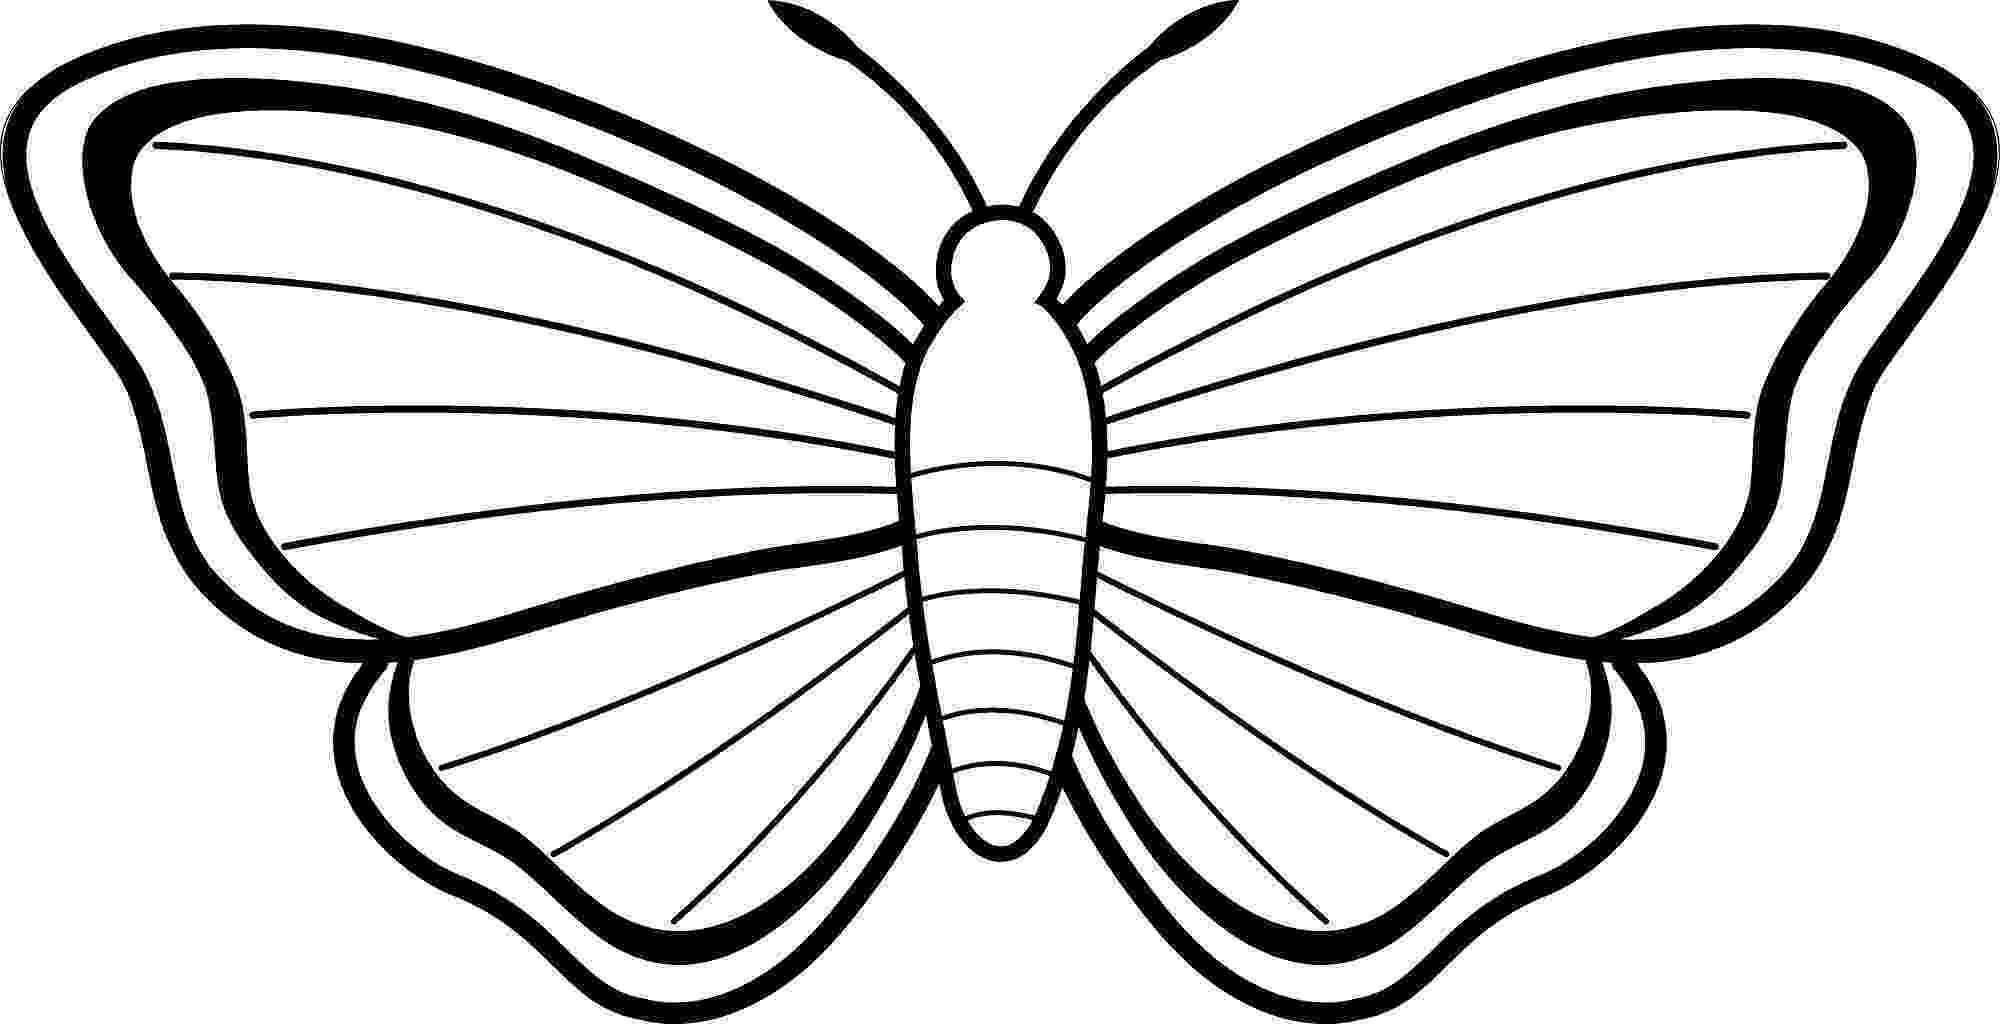 printable butterfly coloring page printable butterfly coloring pages for kids cool2bkids butterfly printable coloring page